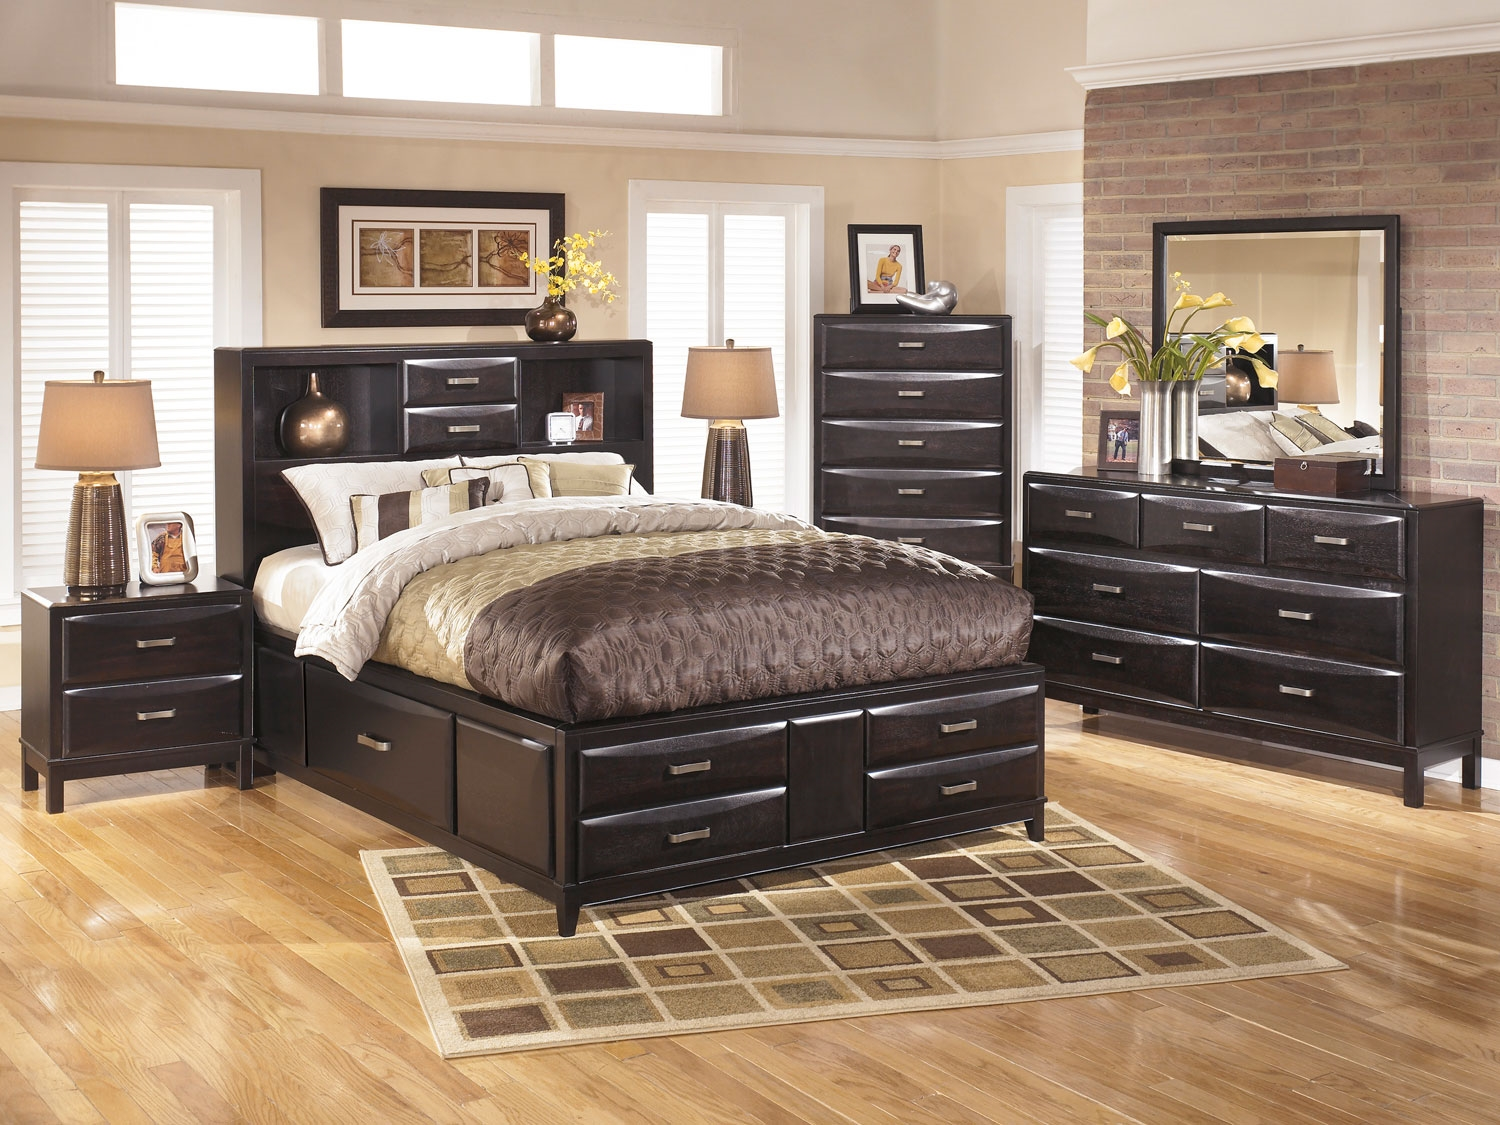 Image of: Ashley Furniture Bed With Storage Price Ideas